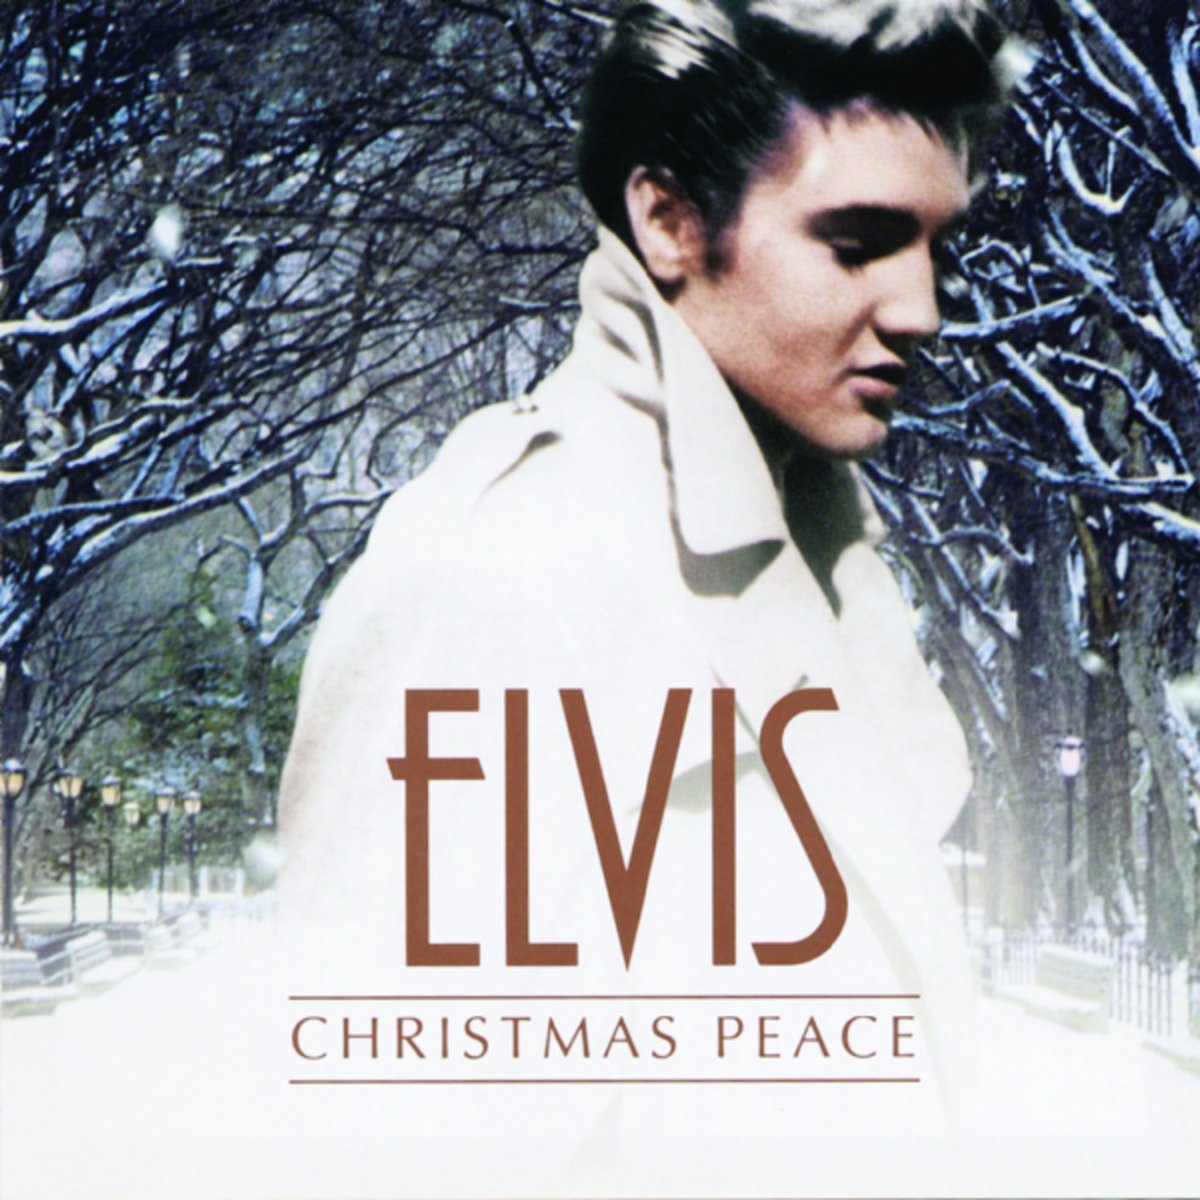 bol.com | Christmas Peace, Elvis Presley | CD (album) | Muziek